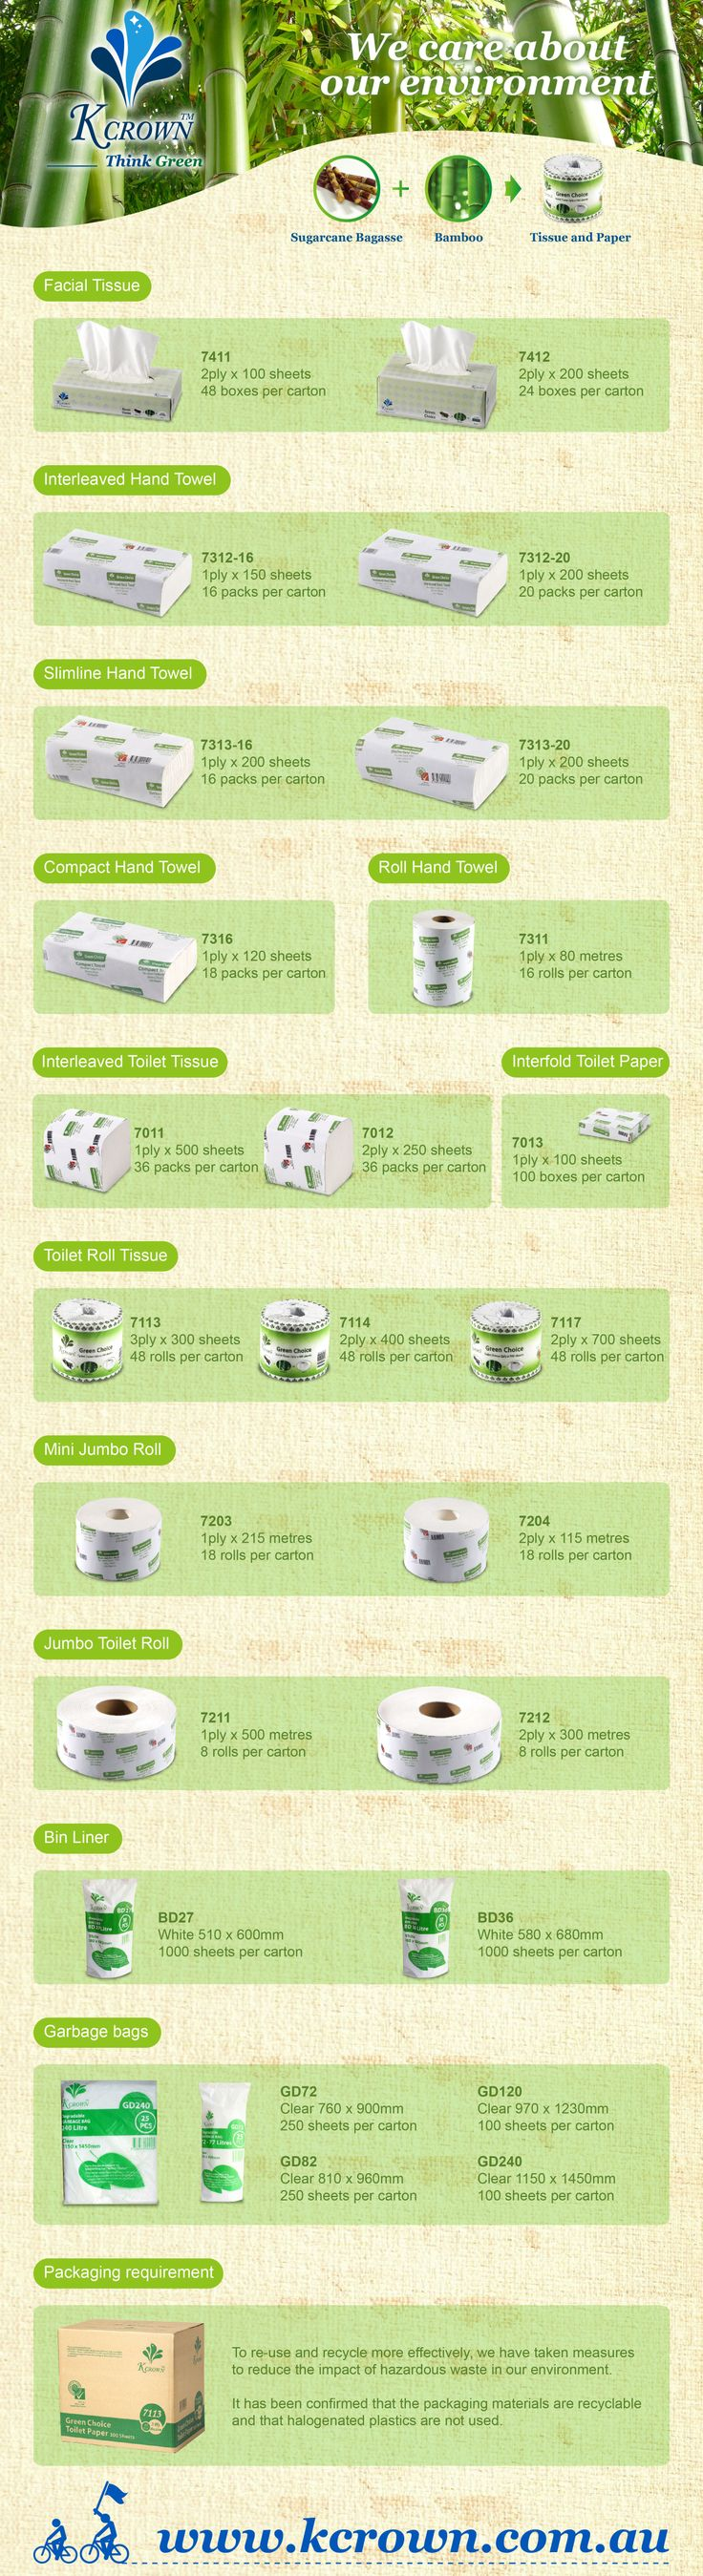 The range of KCrown's environmentally-preferable tissue products.